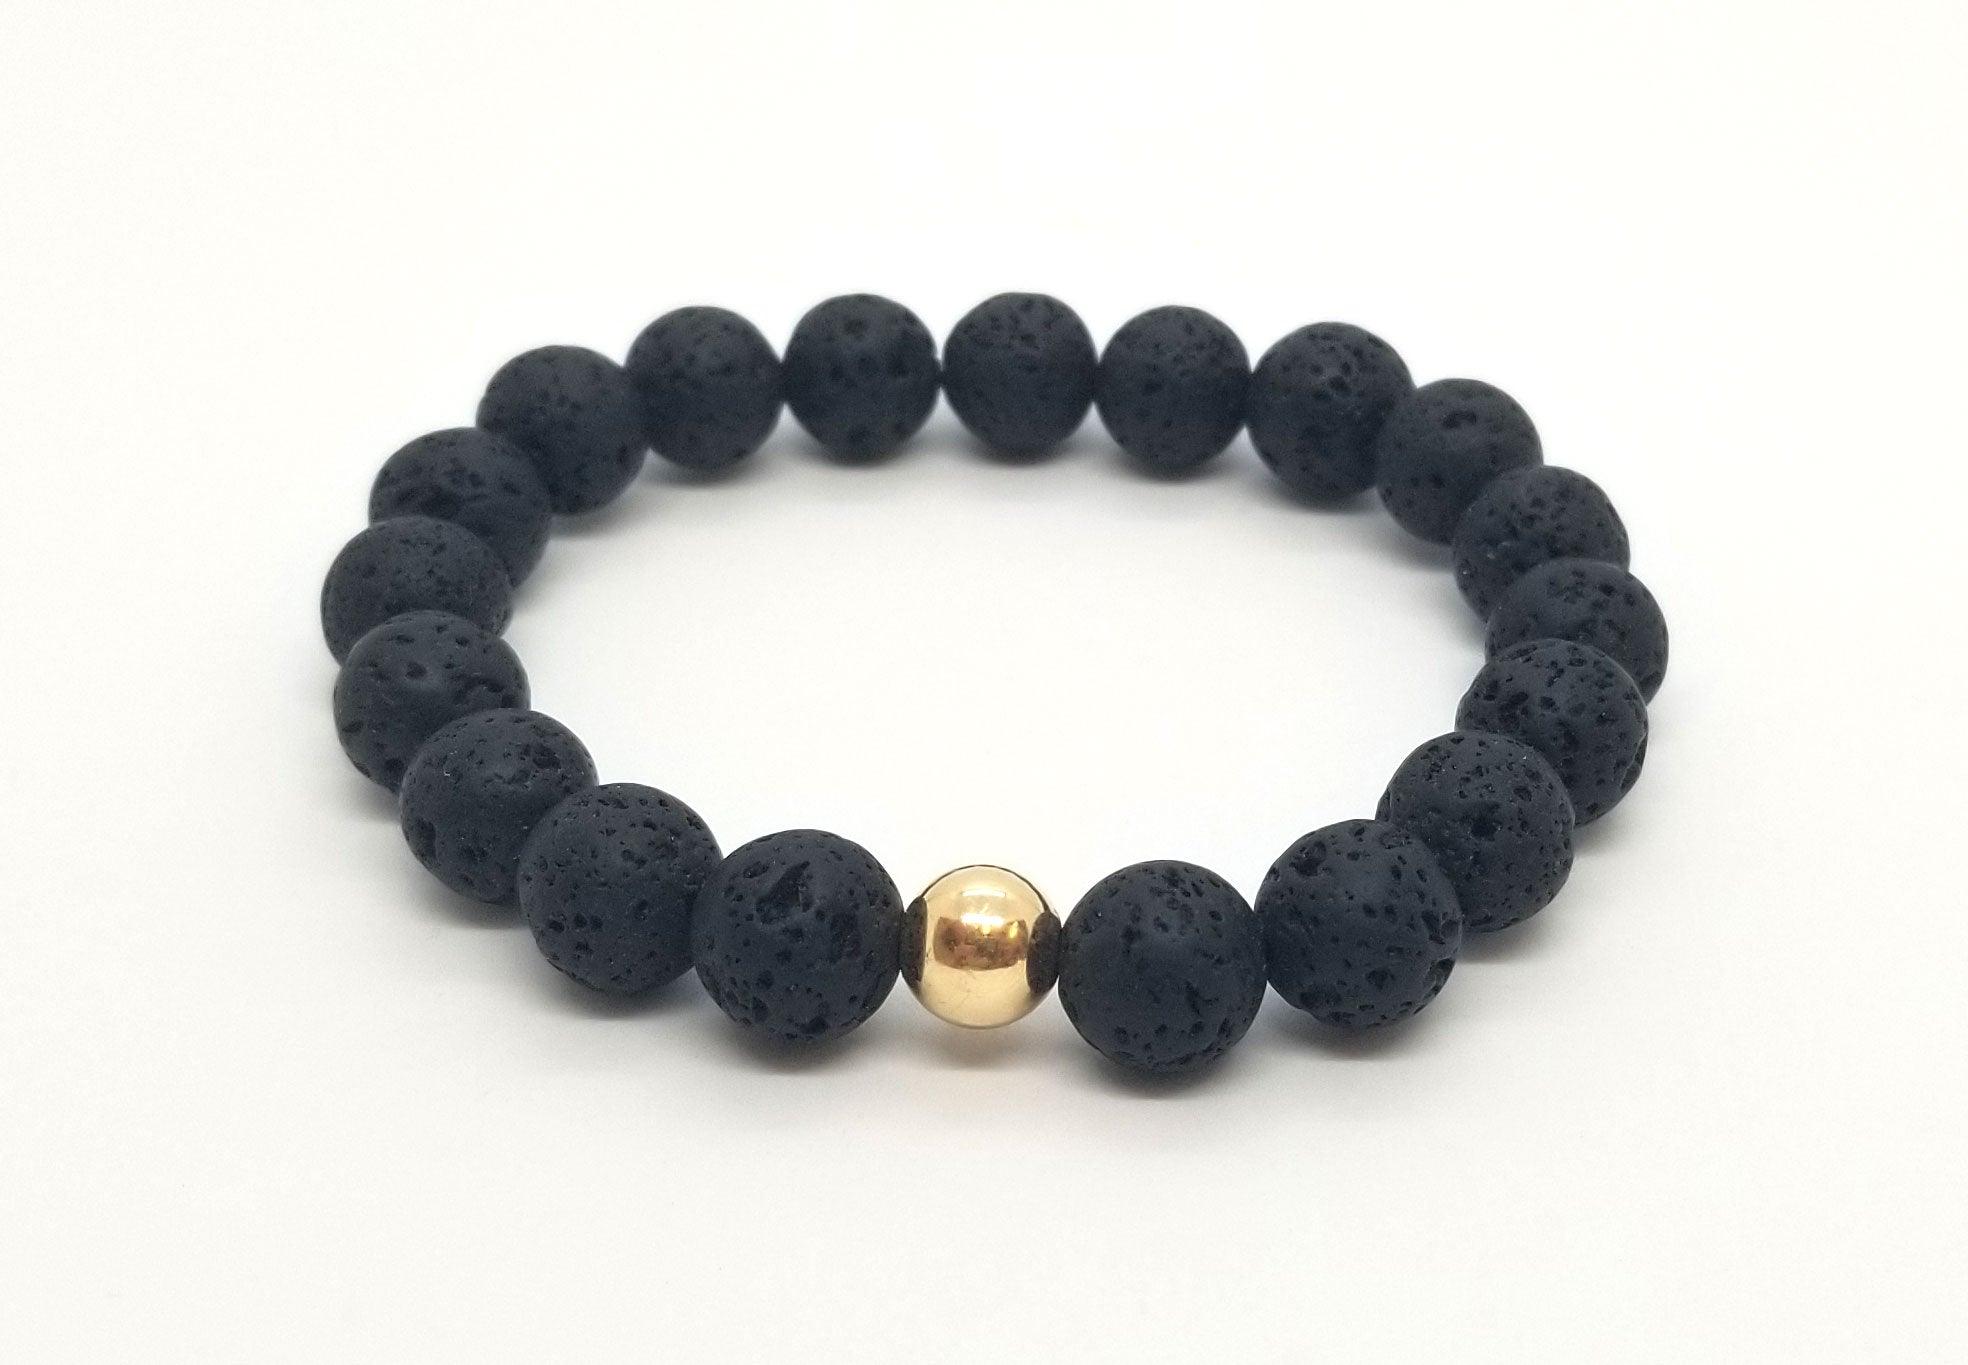 10mm Lava With Gold Center Piece Bracelet